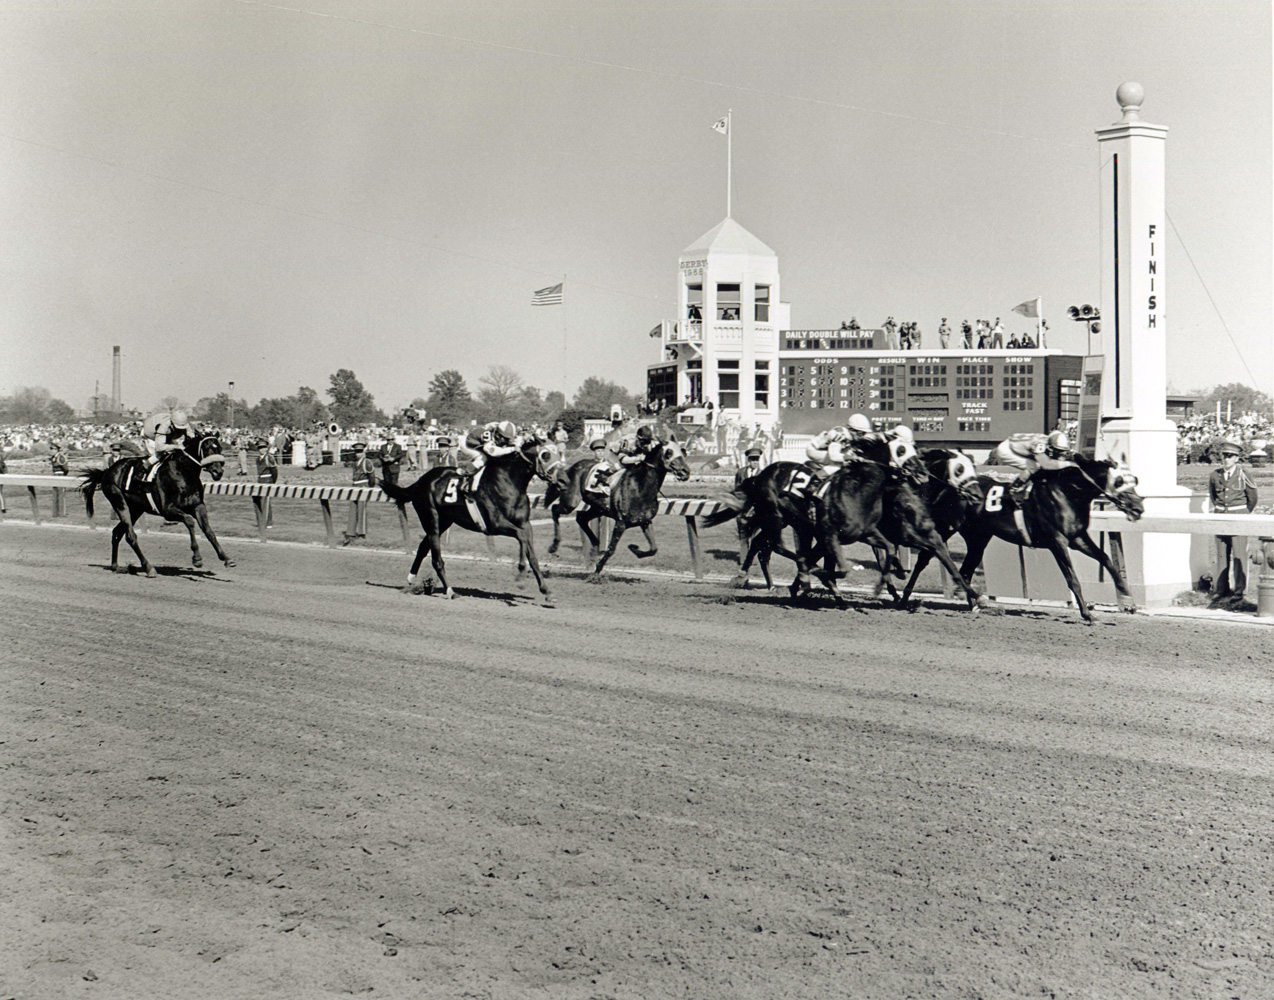 Don Brumfield and Kauai King winning the 1966 Kentucky Derby at Churchill Downs (Churchill Downs Inc./Kinetic Corp. /Museum Collection)